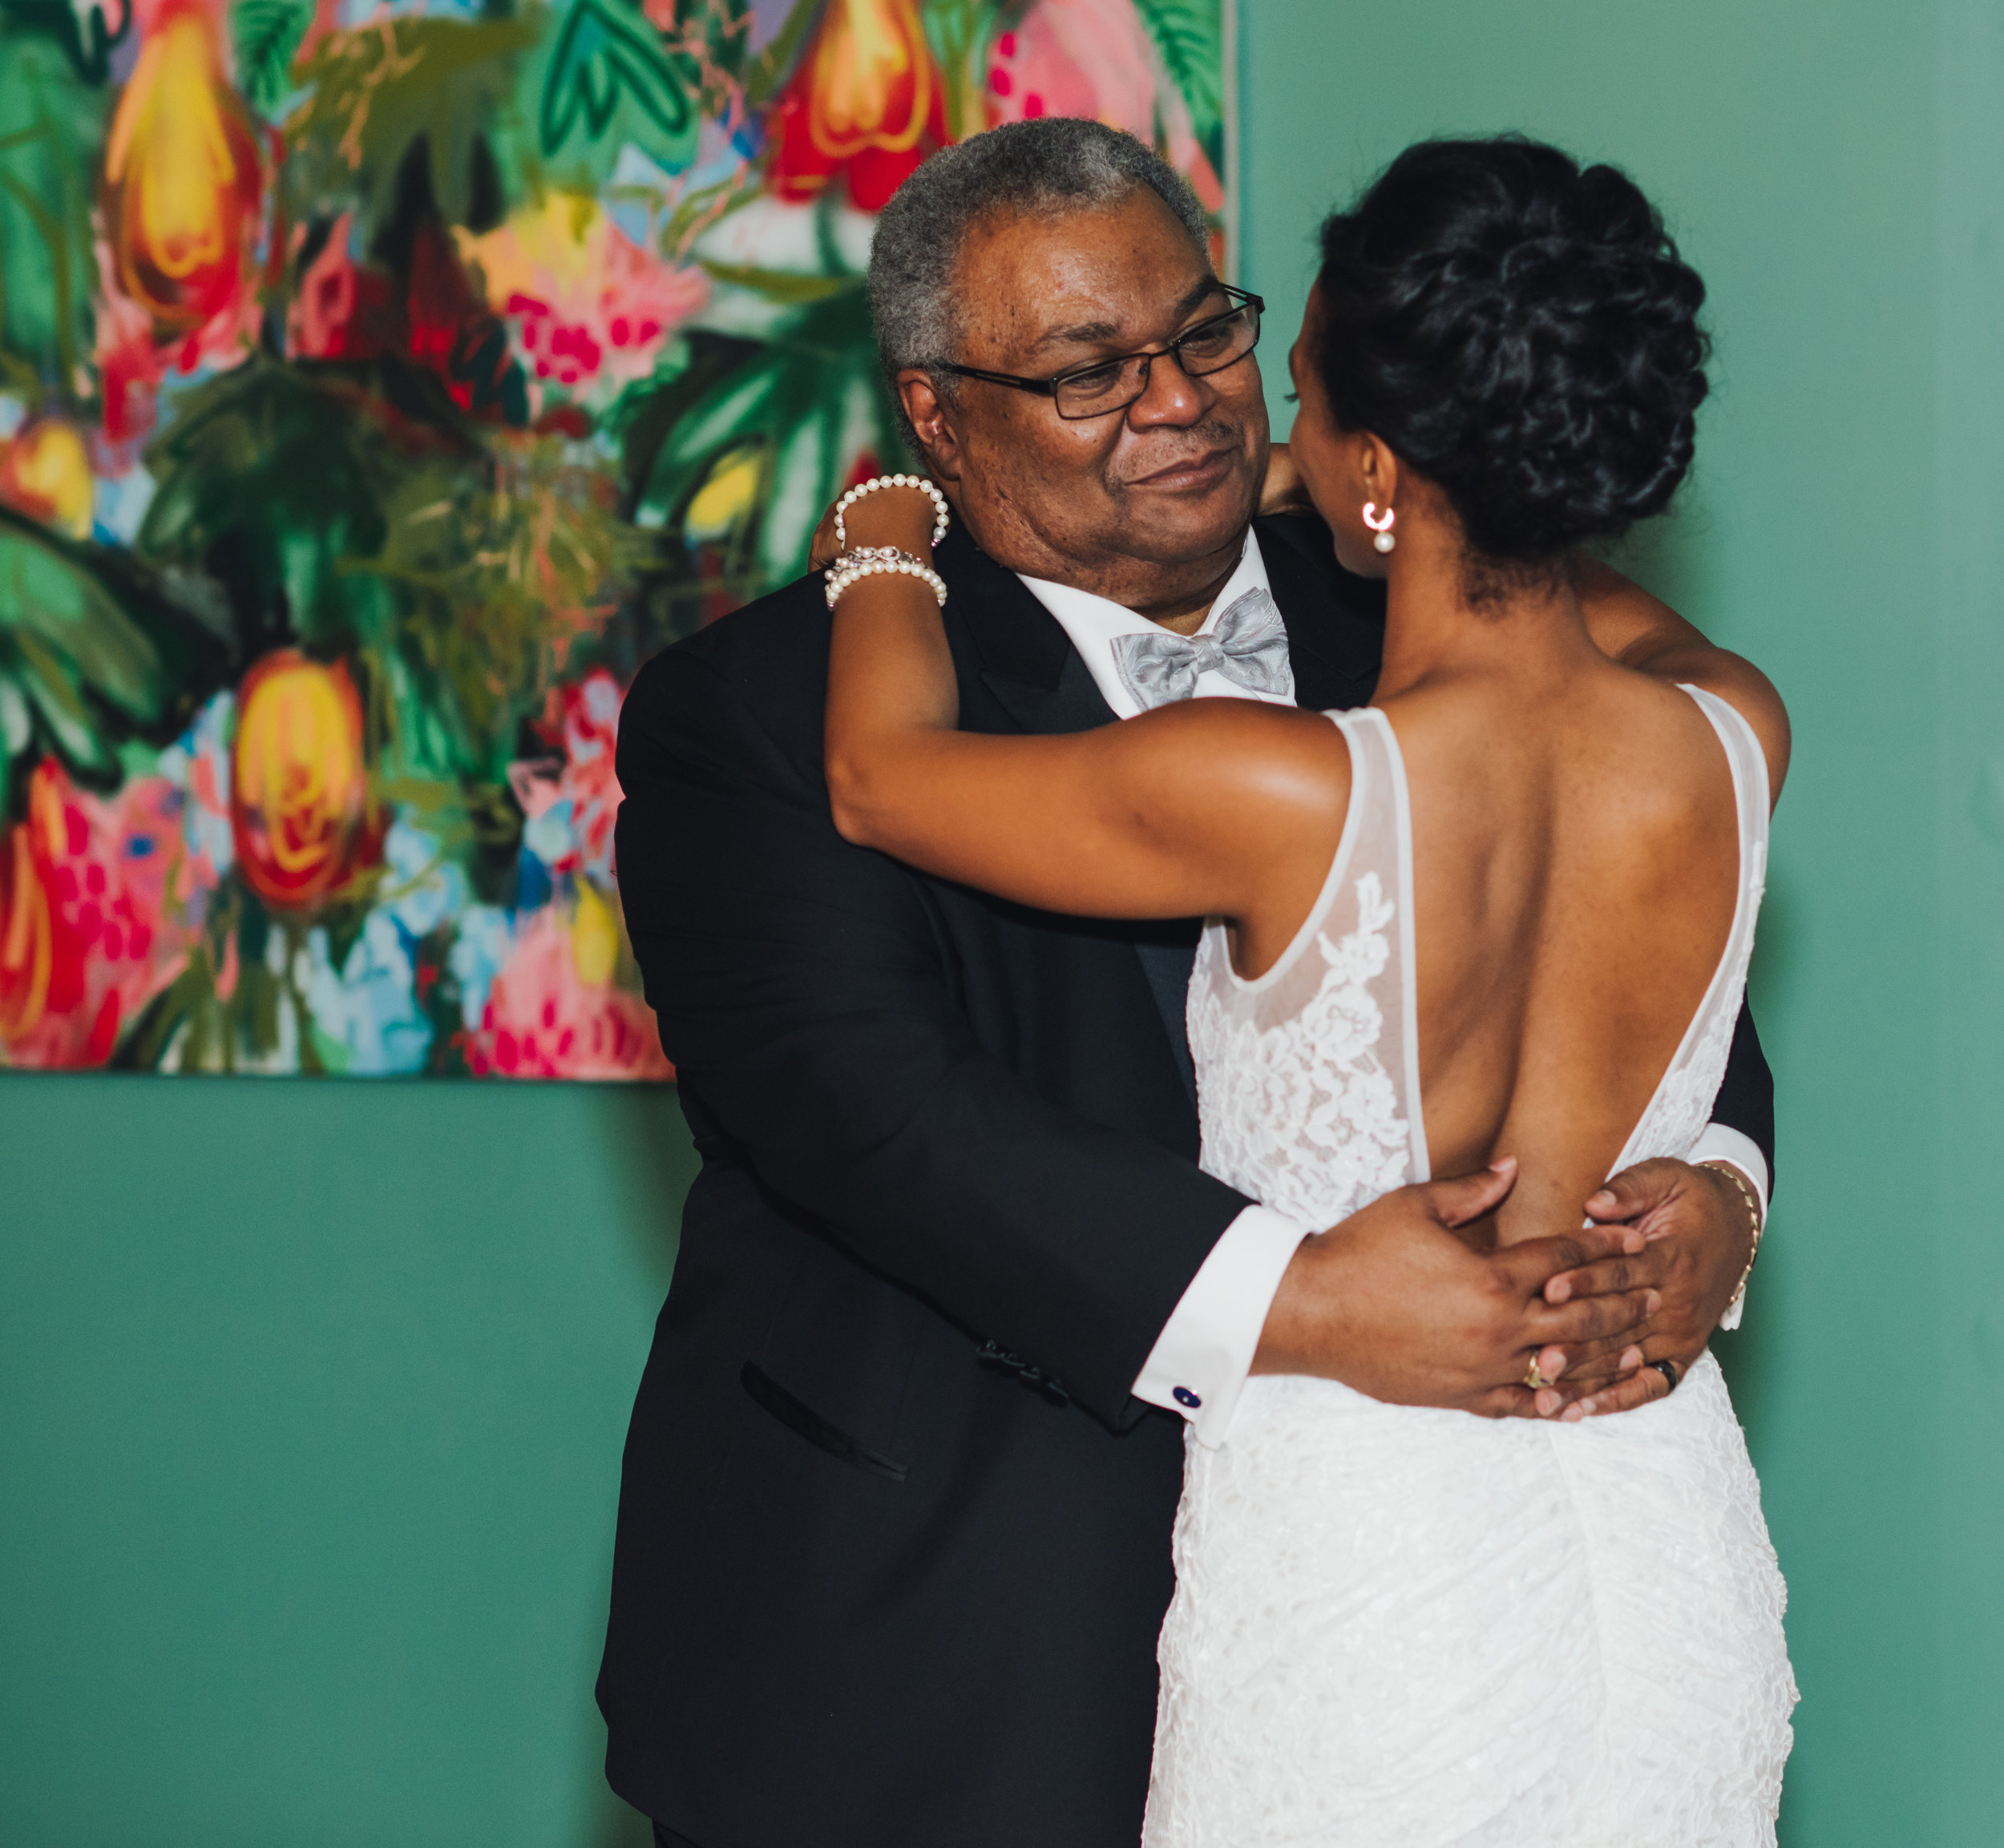 DANIELLE & BRANDON WEDDING - HEDGE ART GALLERY - NYC INTIMATE WEDDING PHOTOGRAPHER - CHI-CHI ARI-433.jpg